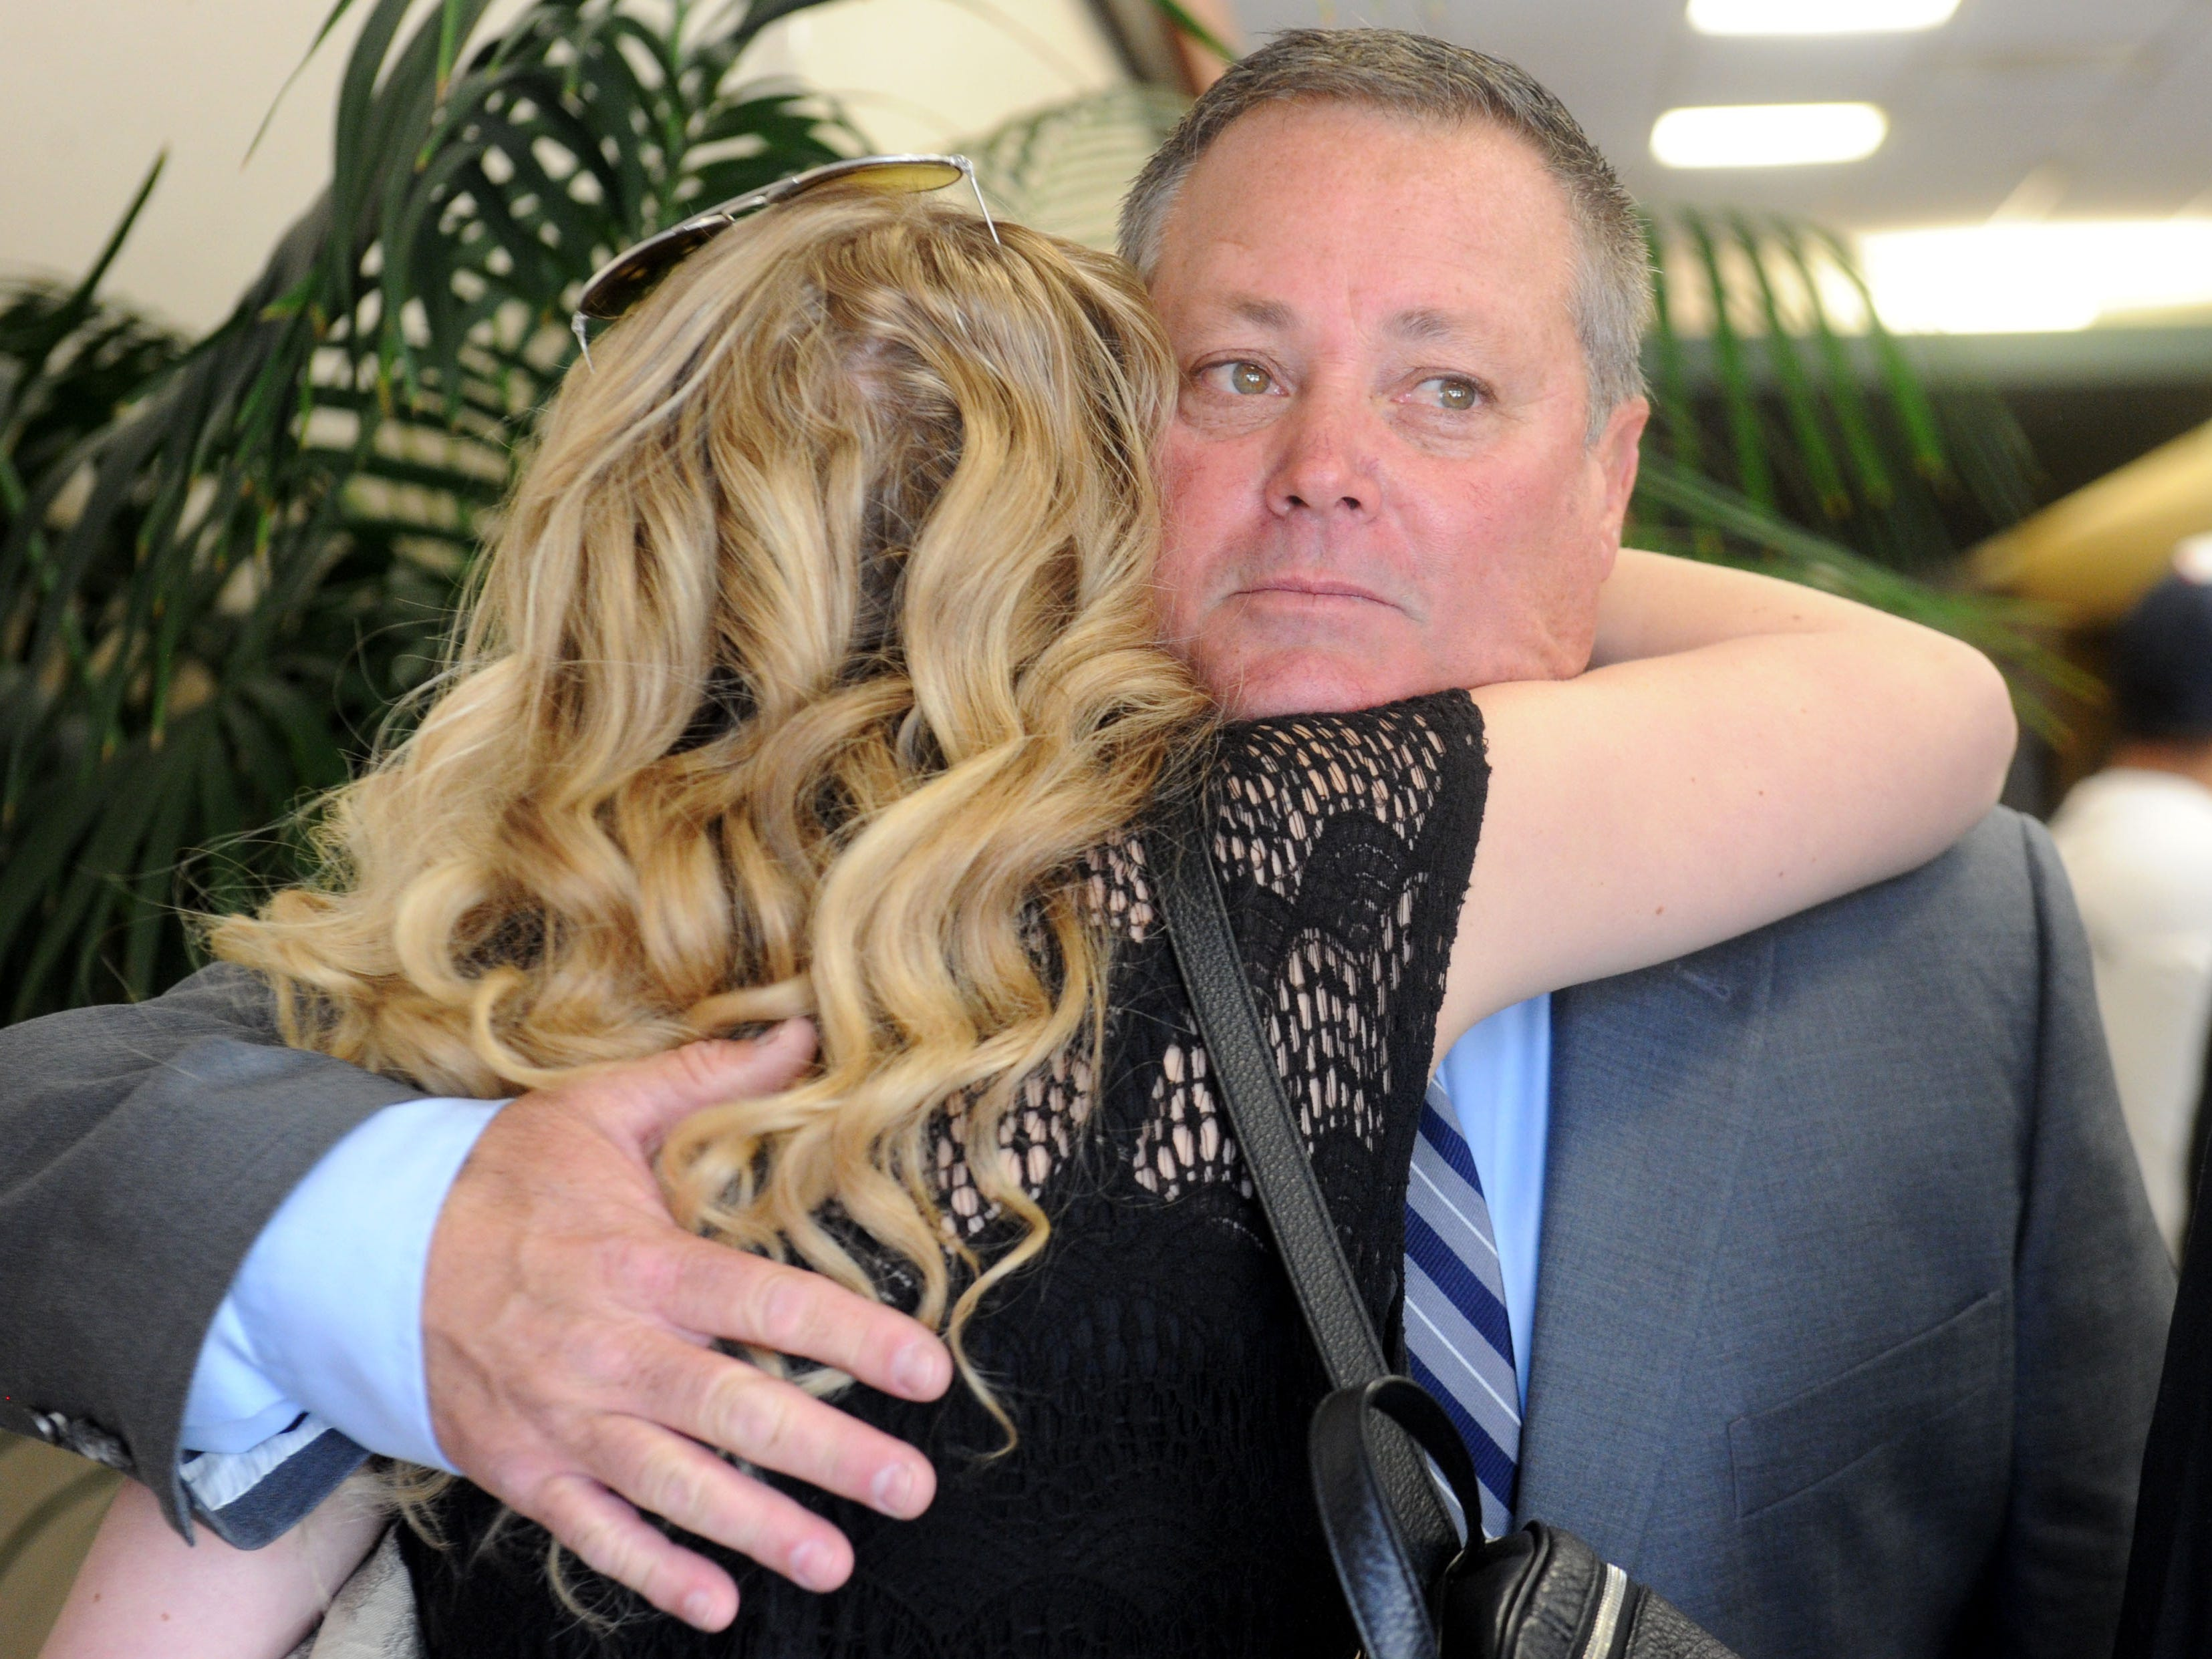 Ken Dunham gets hugs from the friends and family members at the start of the memorial service for his son Jake Dunham, who was killed the night of Nov. 7 at the Borderline Bar & Grill in Thousand Oaks.